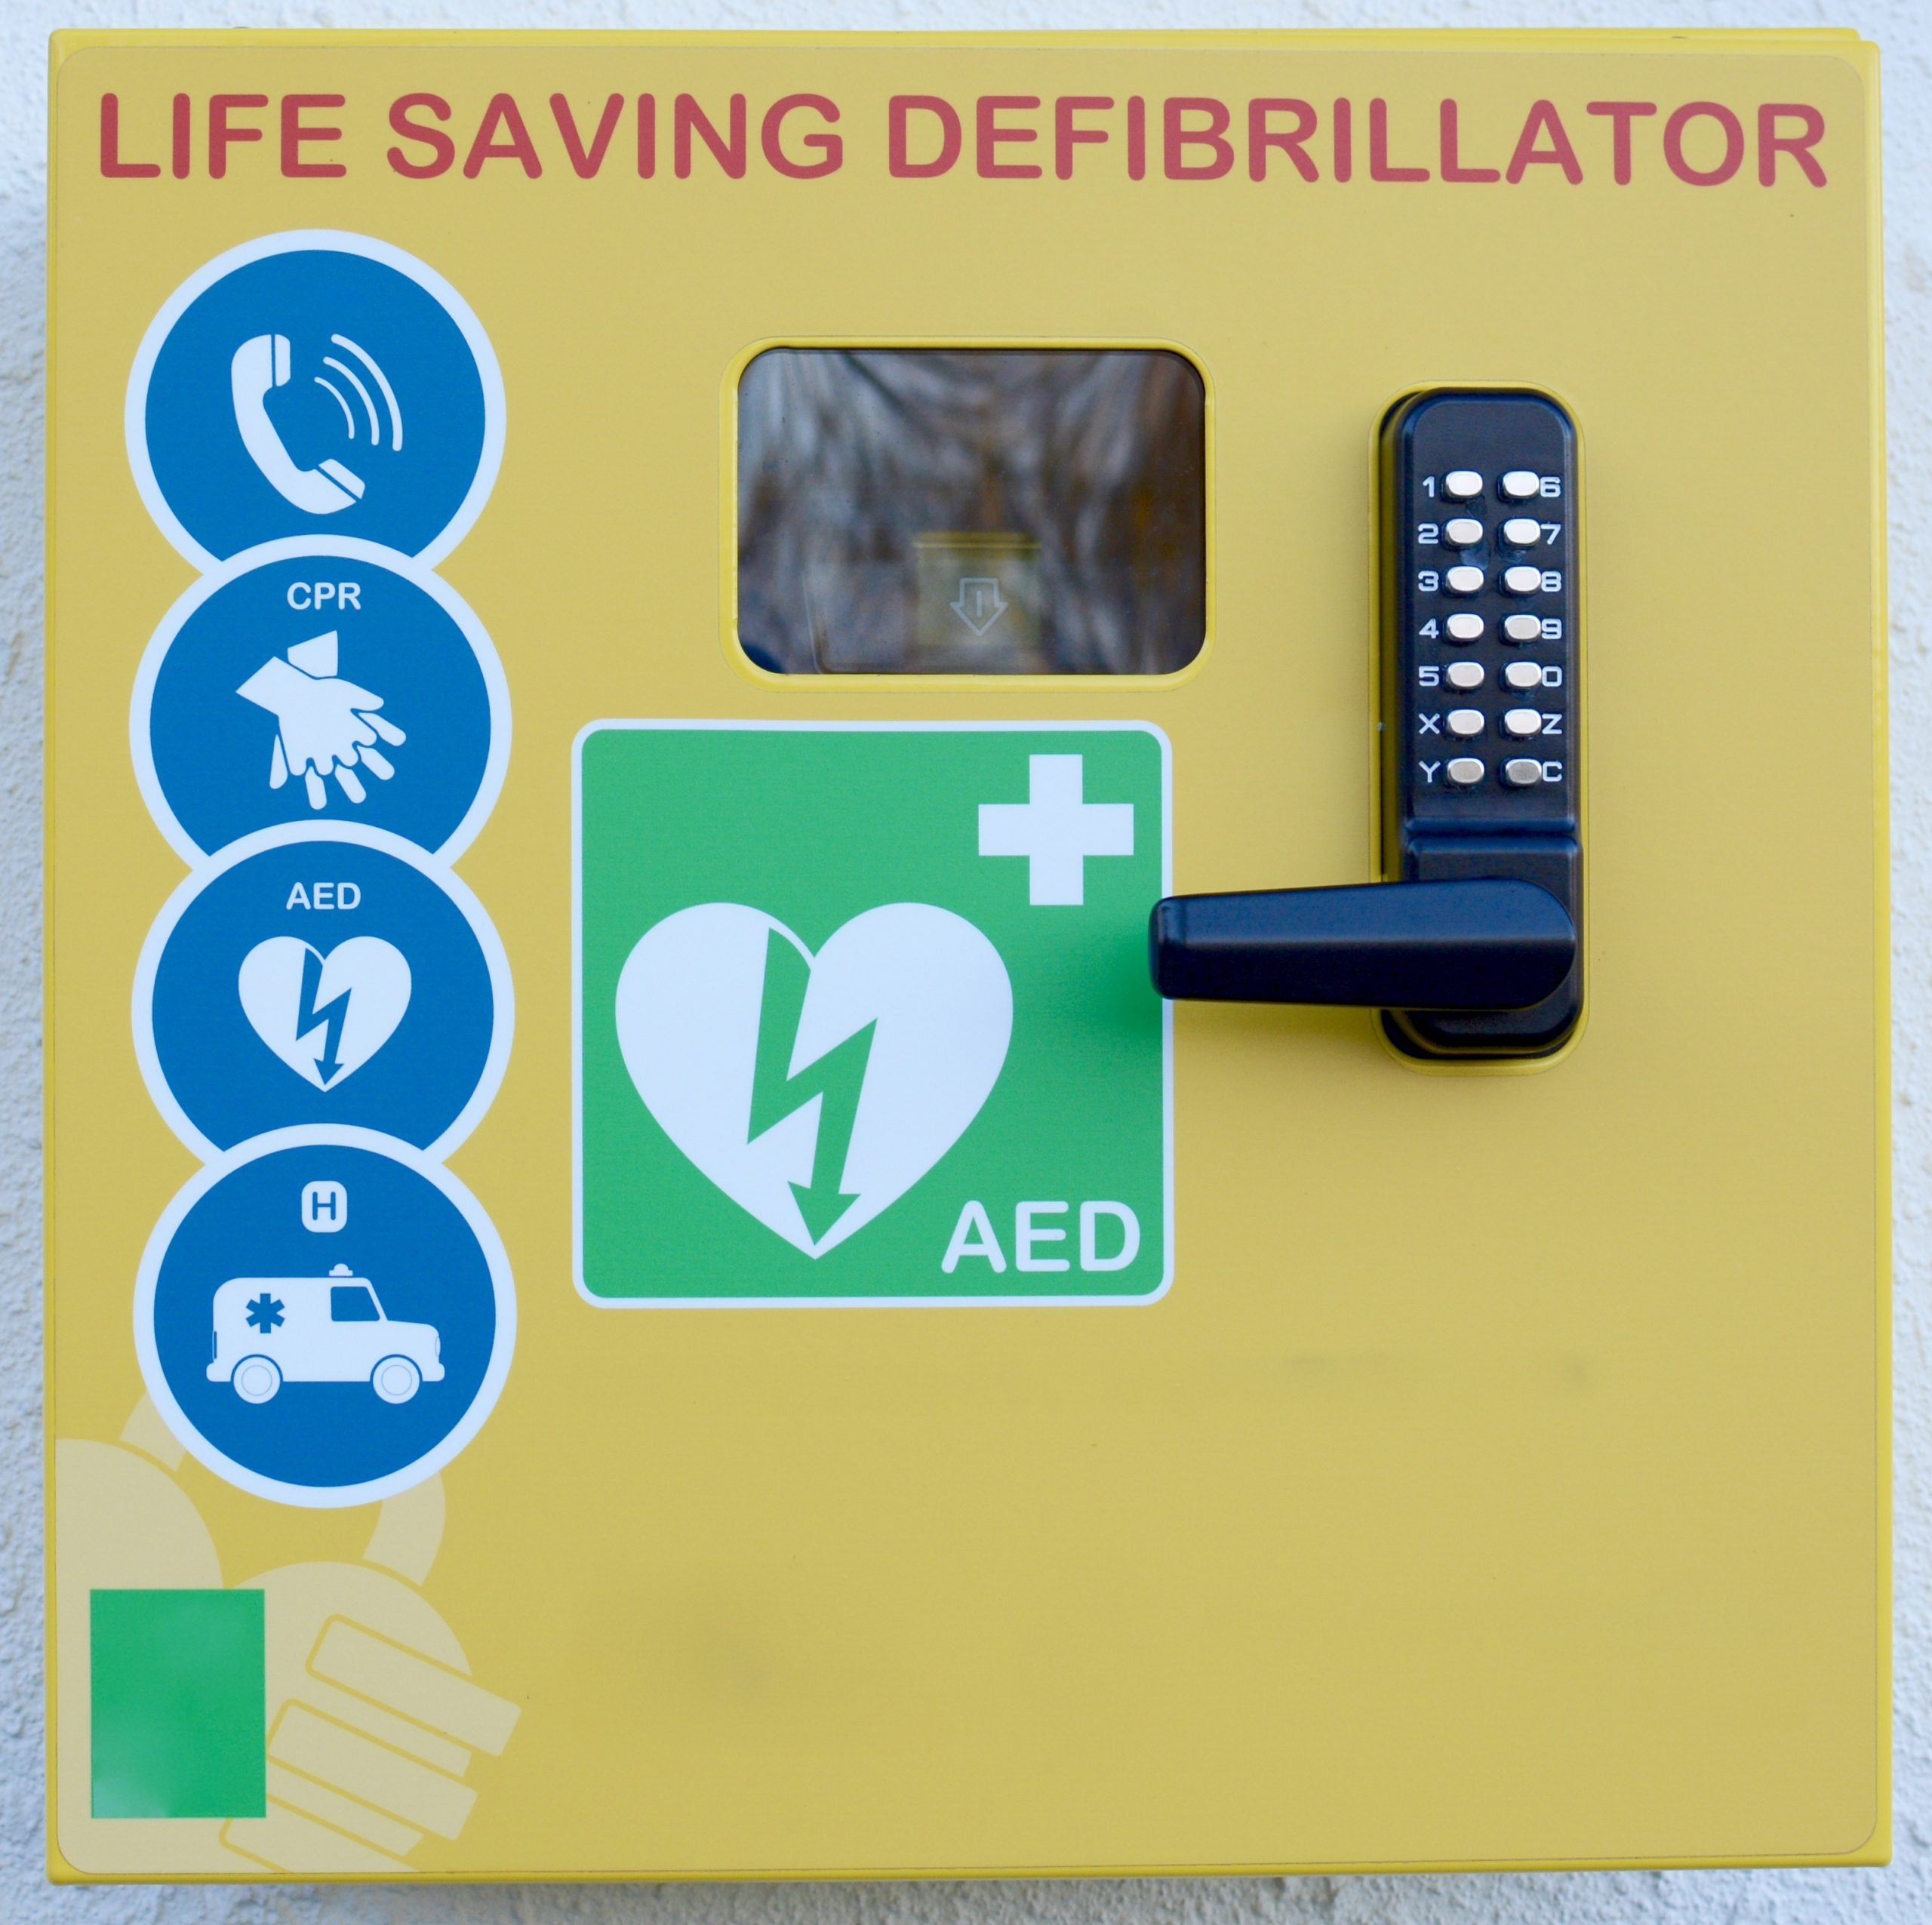 Your Nearest Defib in Wales